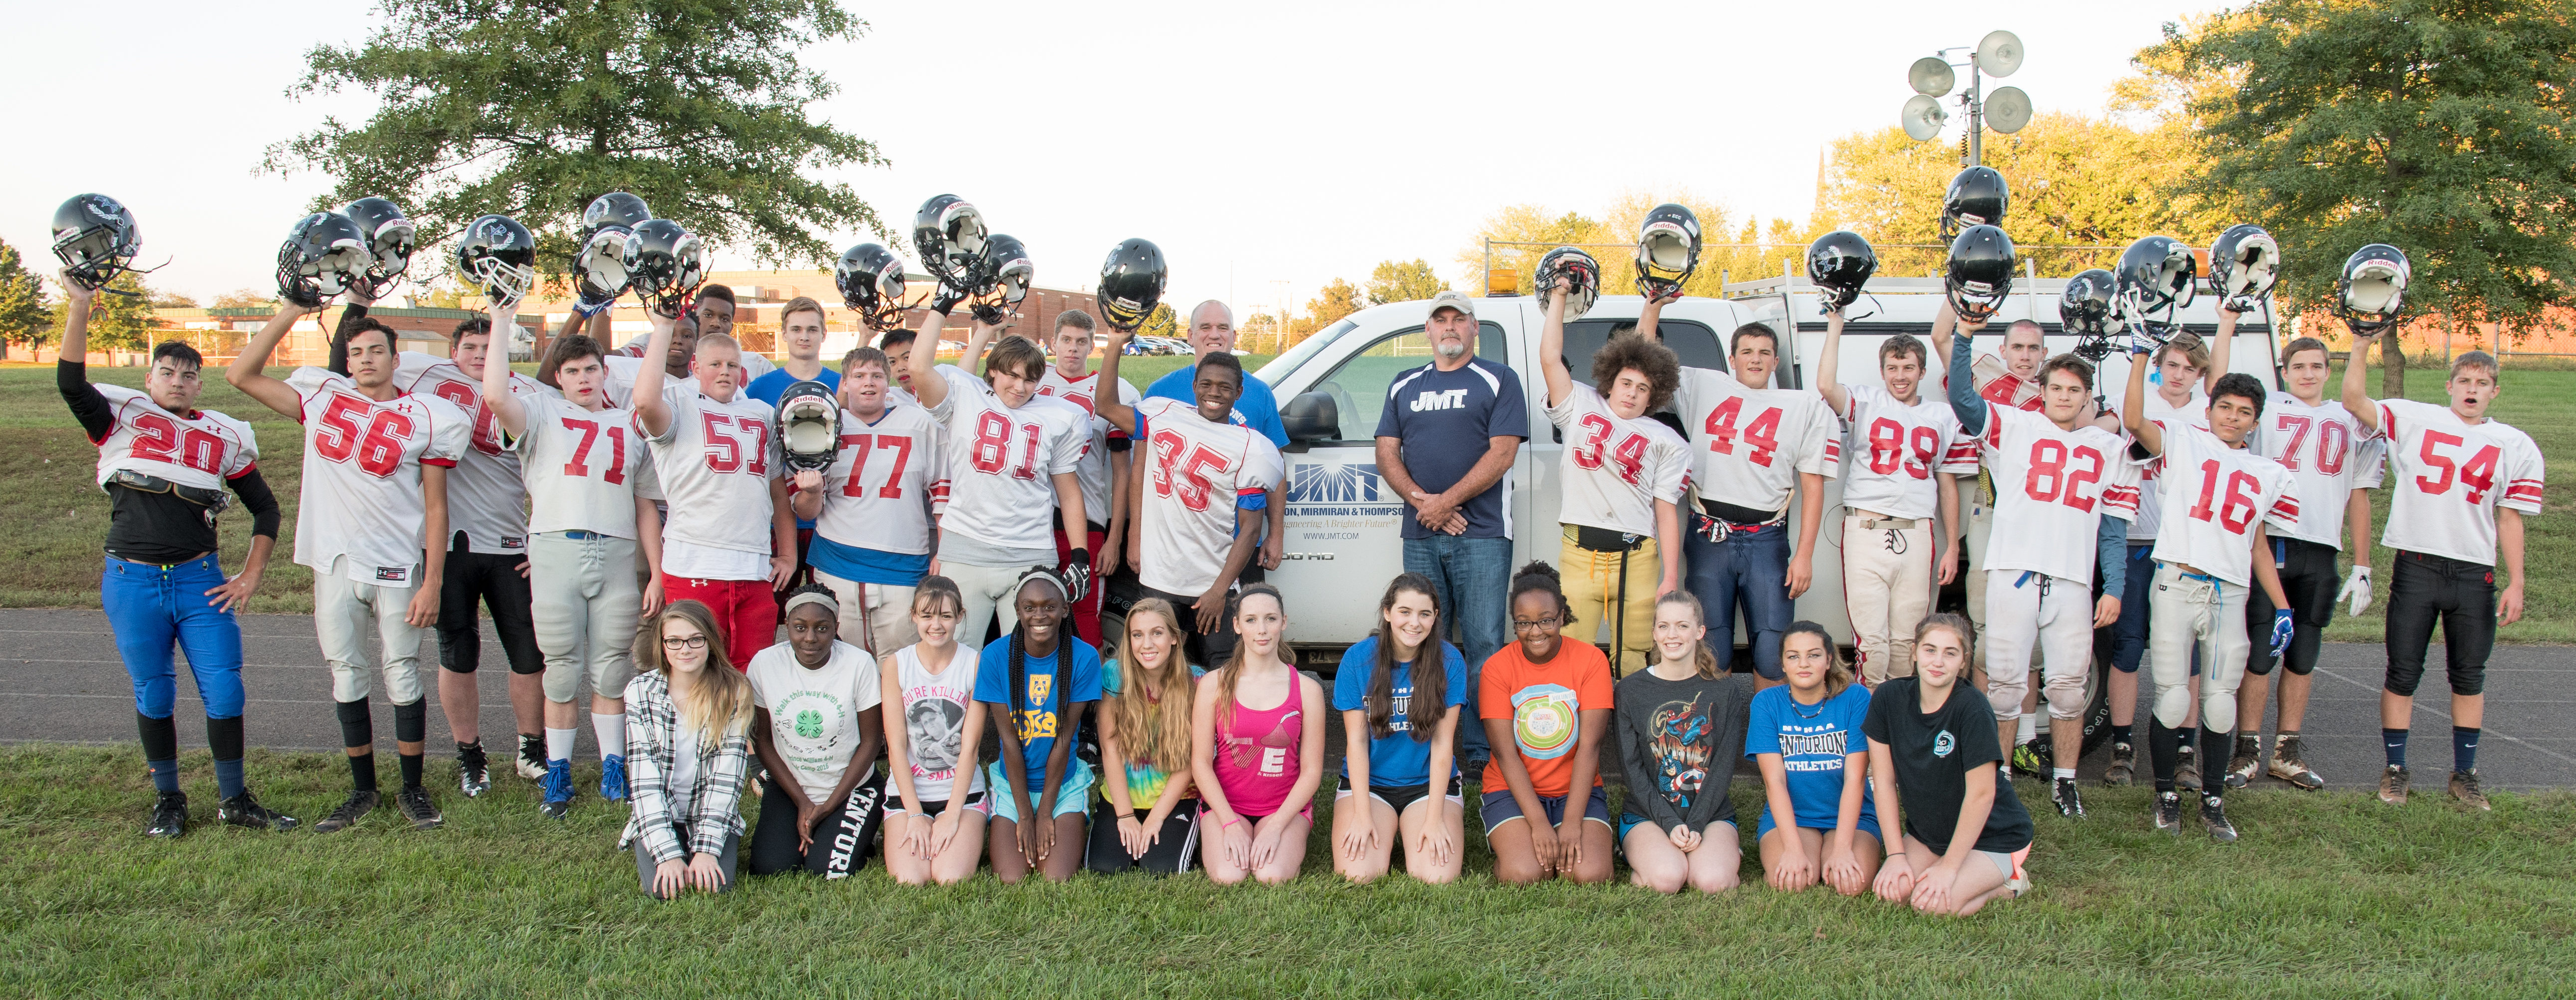 JMT Surveyor and Truck with the 2016 football and cheerleading teams.